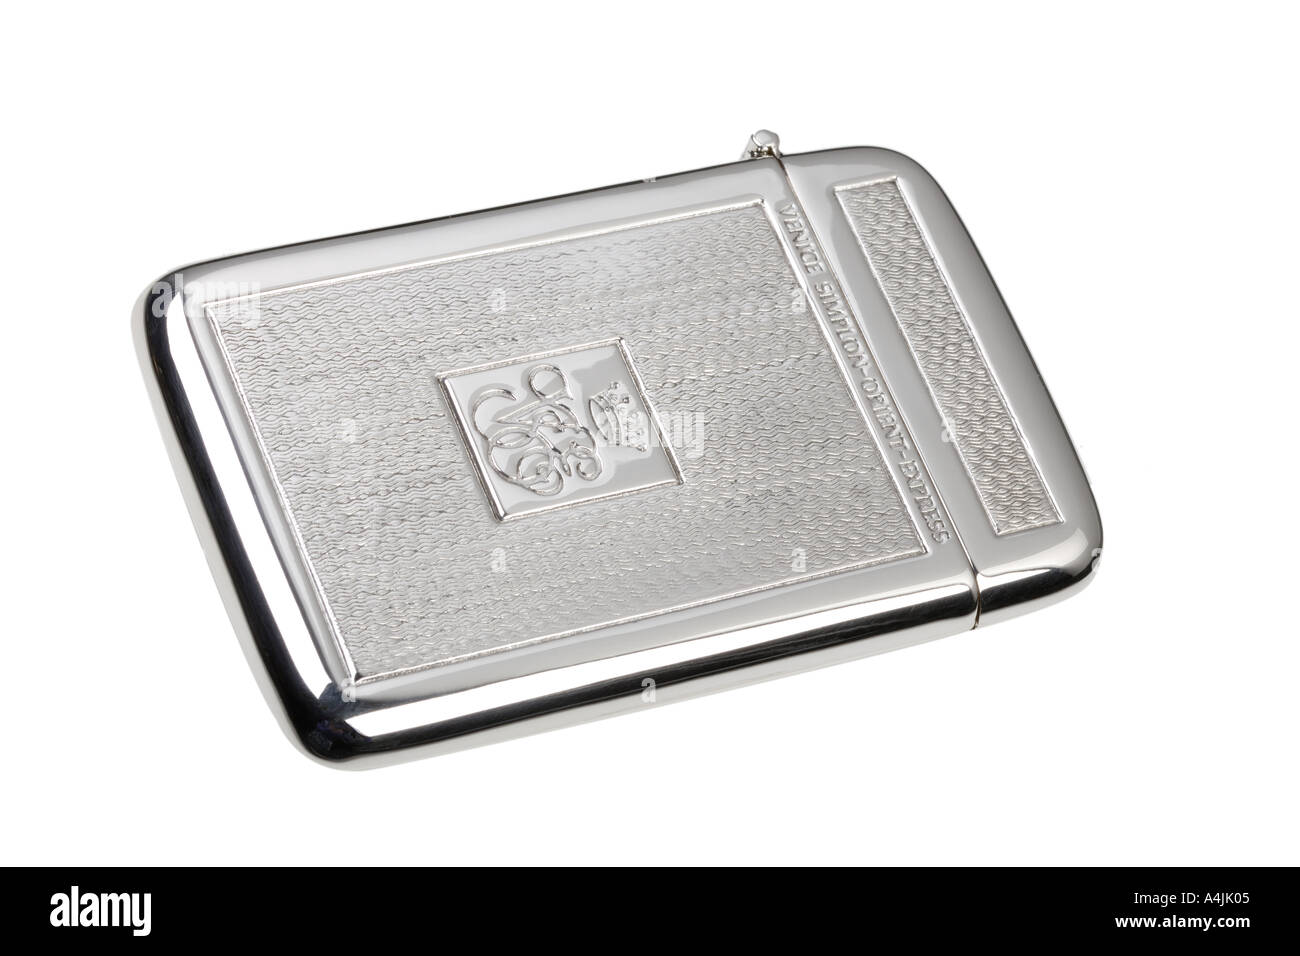 silver business card holder Venice Simplon Orient Express Stock ...